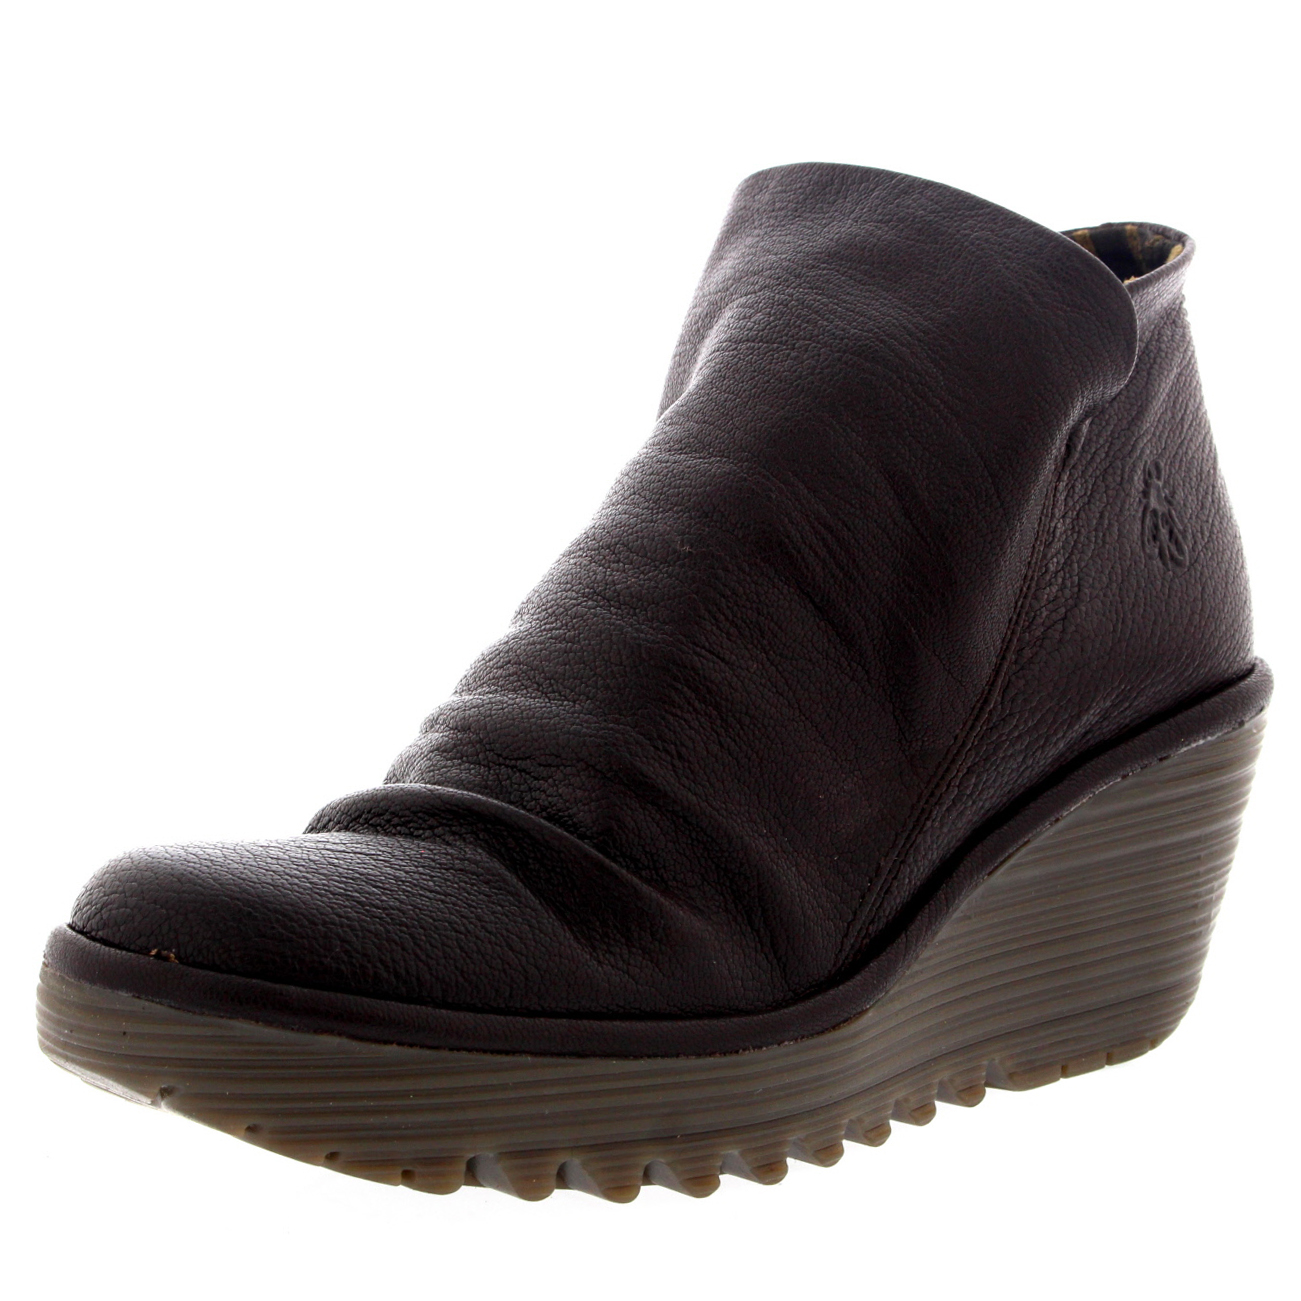 Damenschuhe Fly Heel London Yip Mousse Wedge Heel Fly Leder Casual Winter Ankle Boot UK 3-9 357817